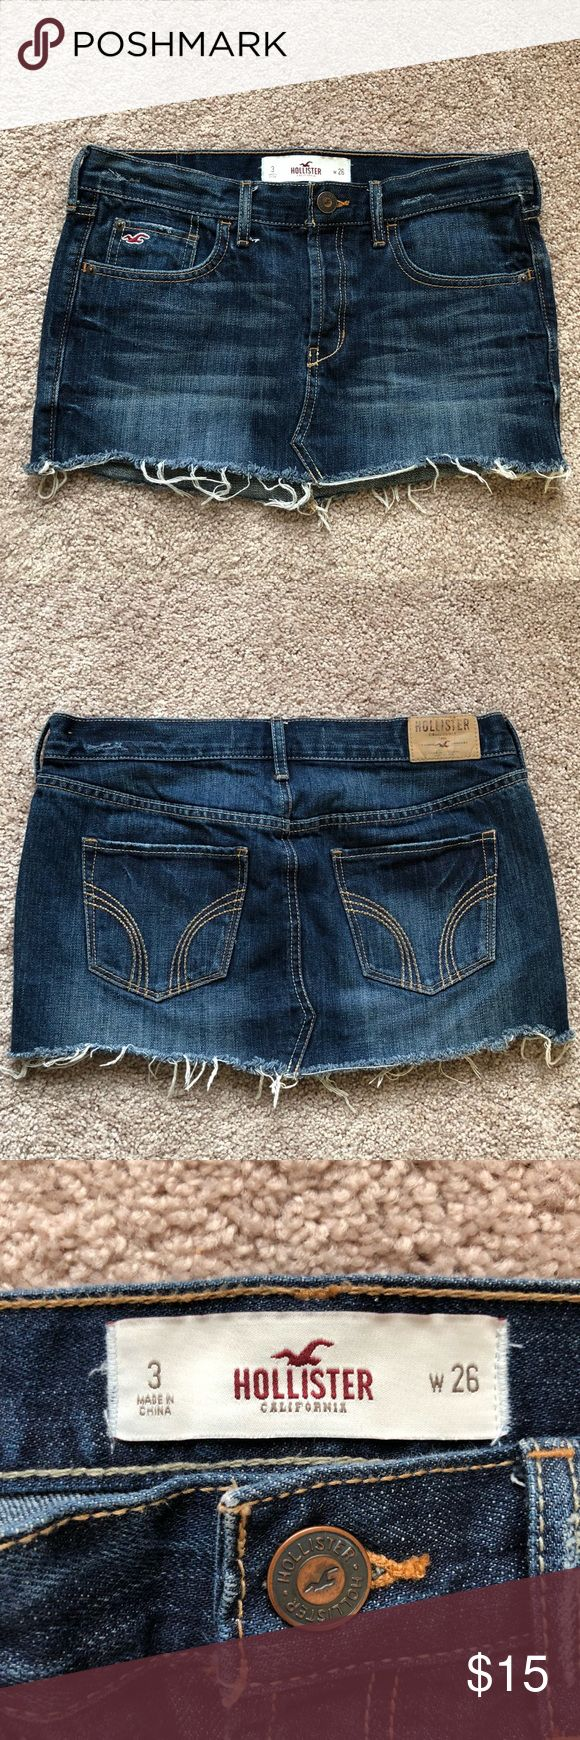 Hollister Denim Mini Skirt! 💙 This denim mini skirt from Hollister is company distressed and a dark wash. The skirt is approx. 11 inches in length and 15 1/2 inches at the waist while laying flat (pictures provided). Skirt is a size 3 and in excellent condition! Feel free to make an offer or bundle for a discount! ❤️ Hollister Skirts Mini